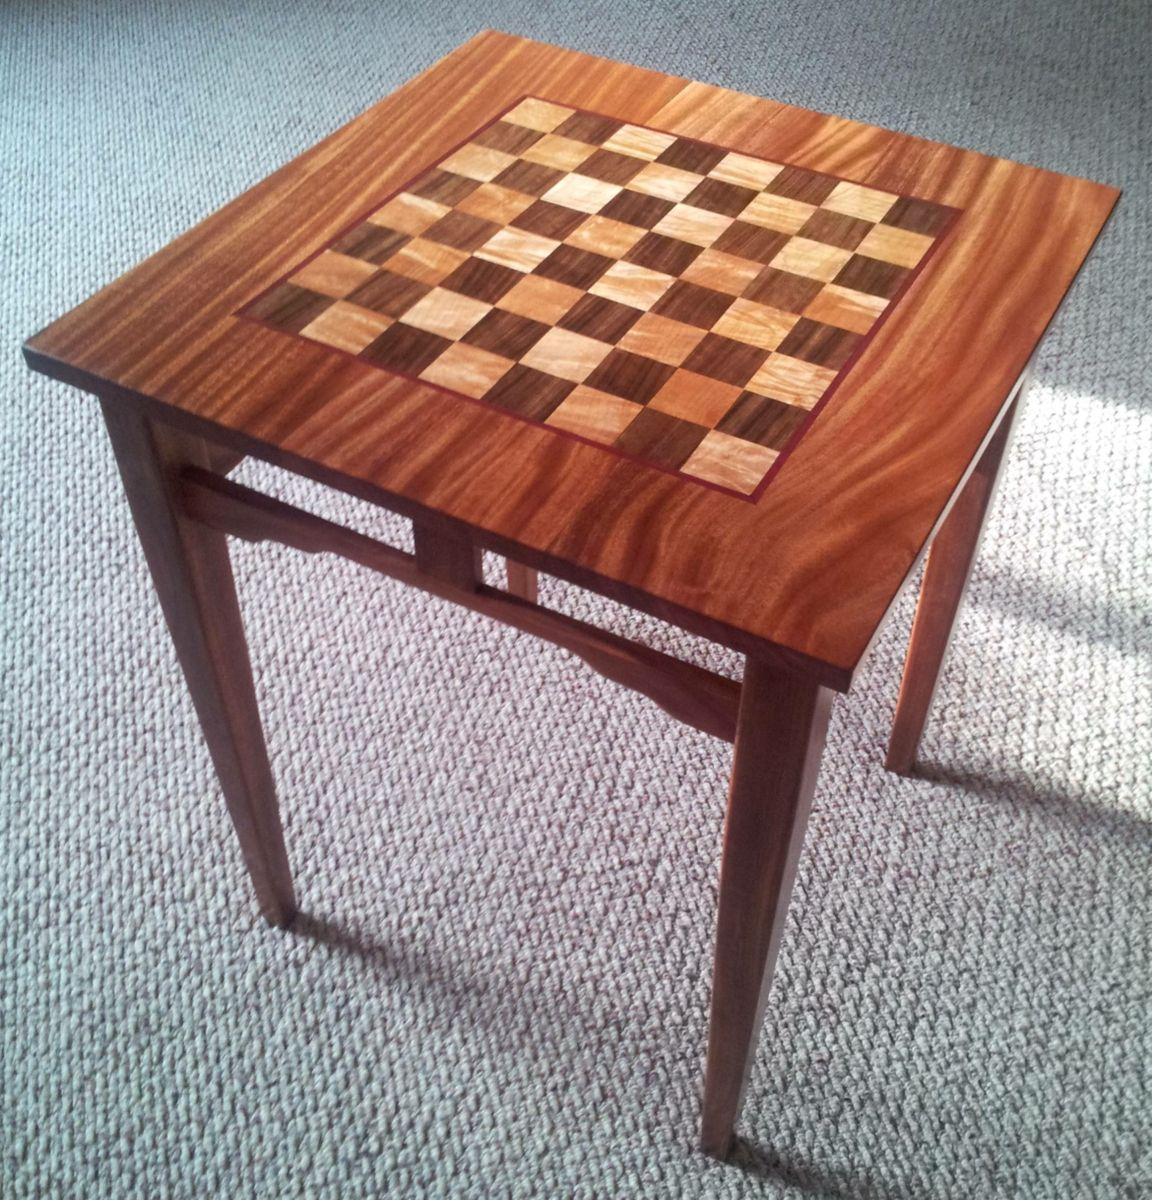 Custom made sapele maple and walnut chess table by reeds custom made sapele maple and walnut chess table geotapseo Image collections